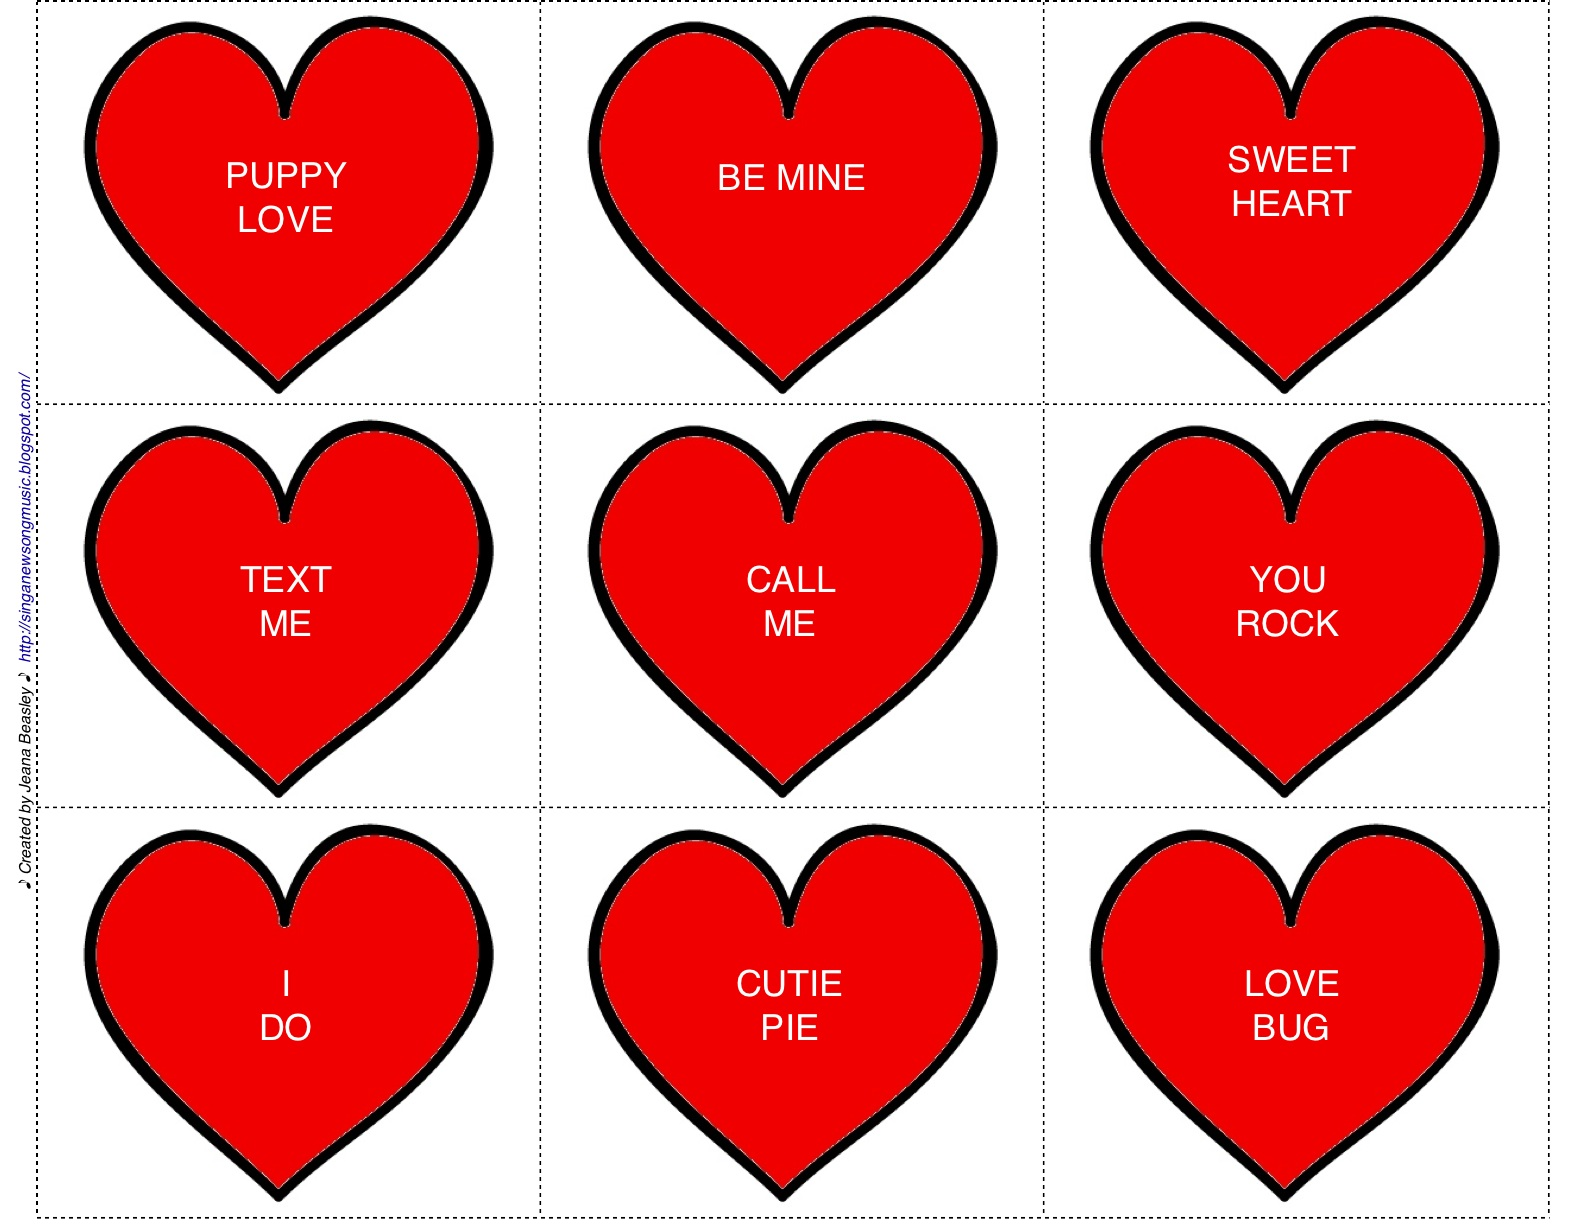 hearts card game online